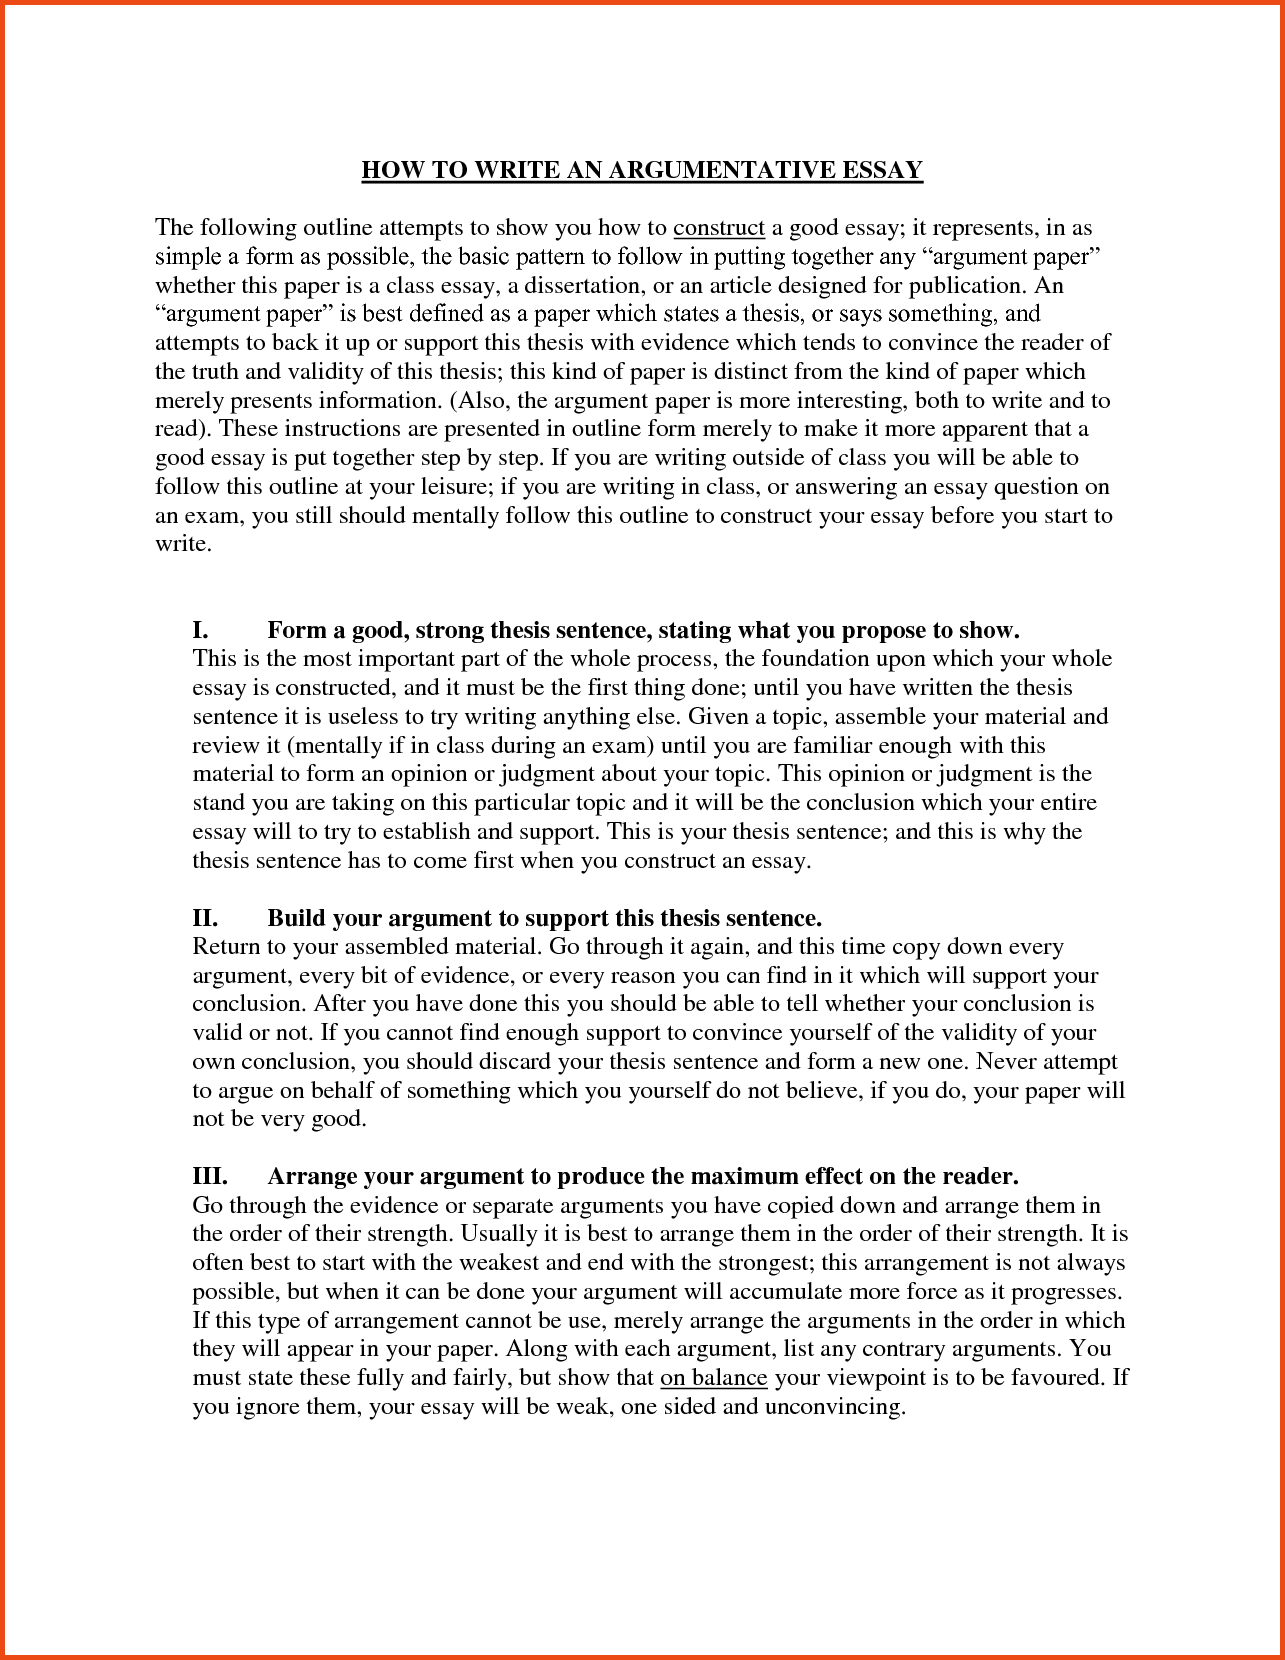 005 Essay Example How To Start An Brilliant Ideas Of Good Ways About Yourself Dissertation Nice Amazing A Definition Begin With Hook Dictionary Full